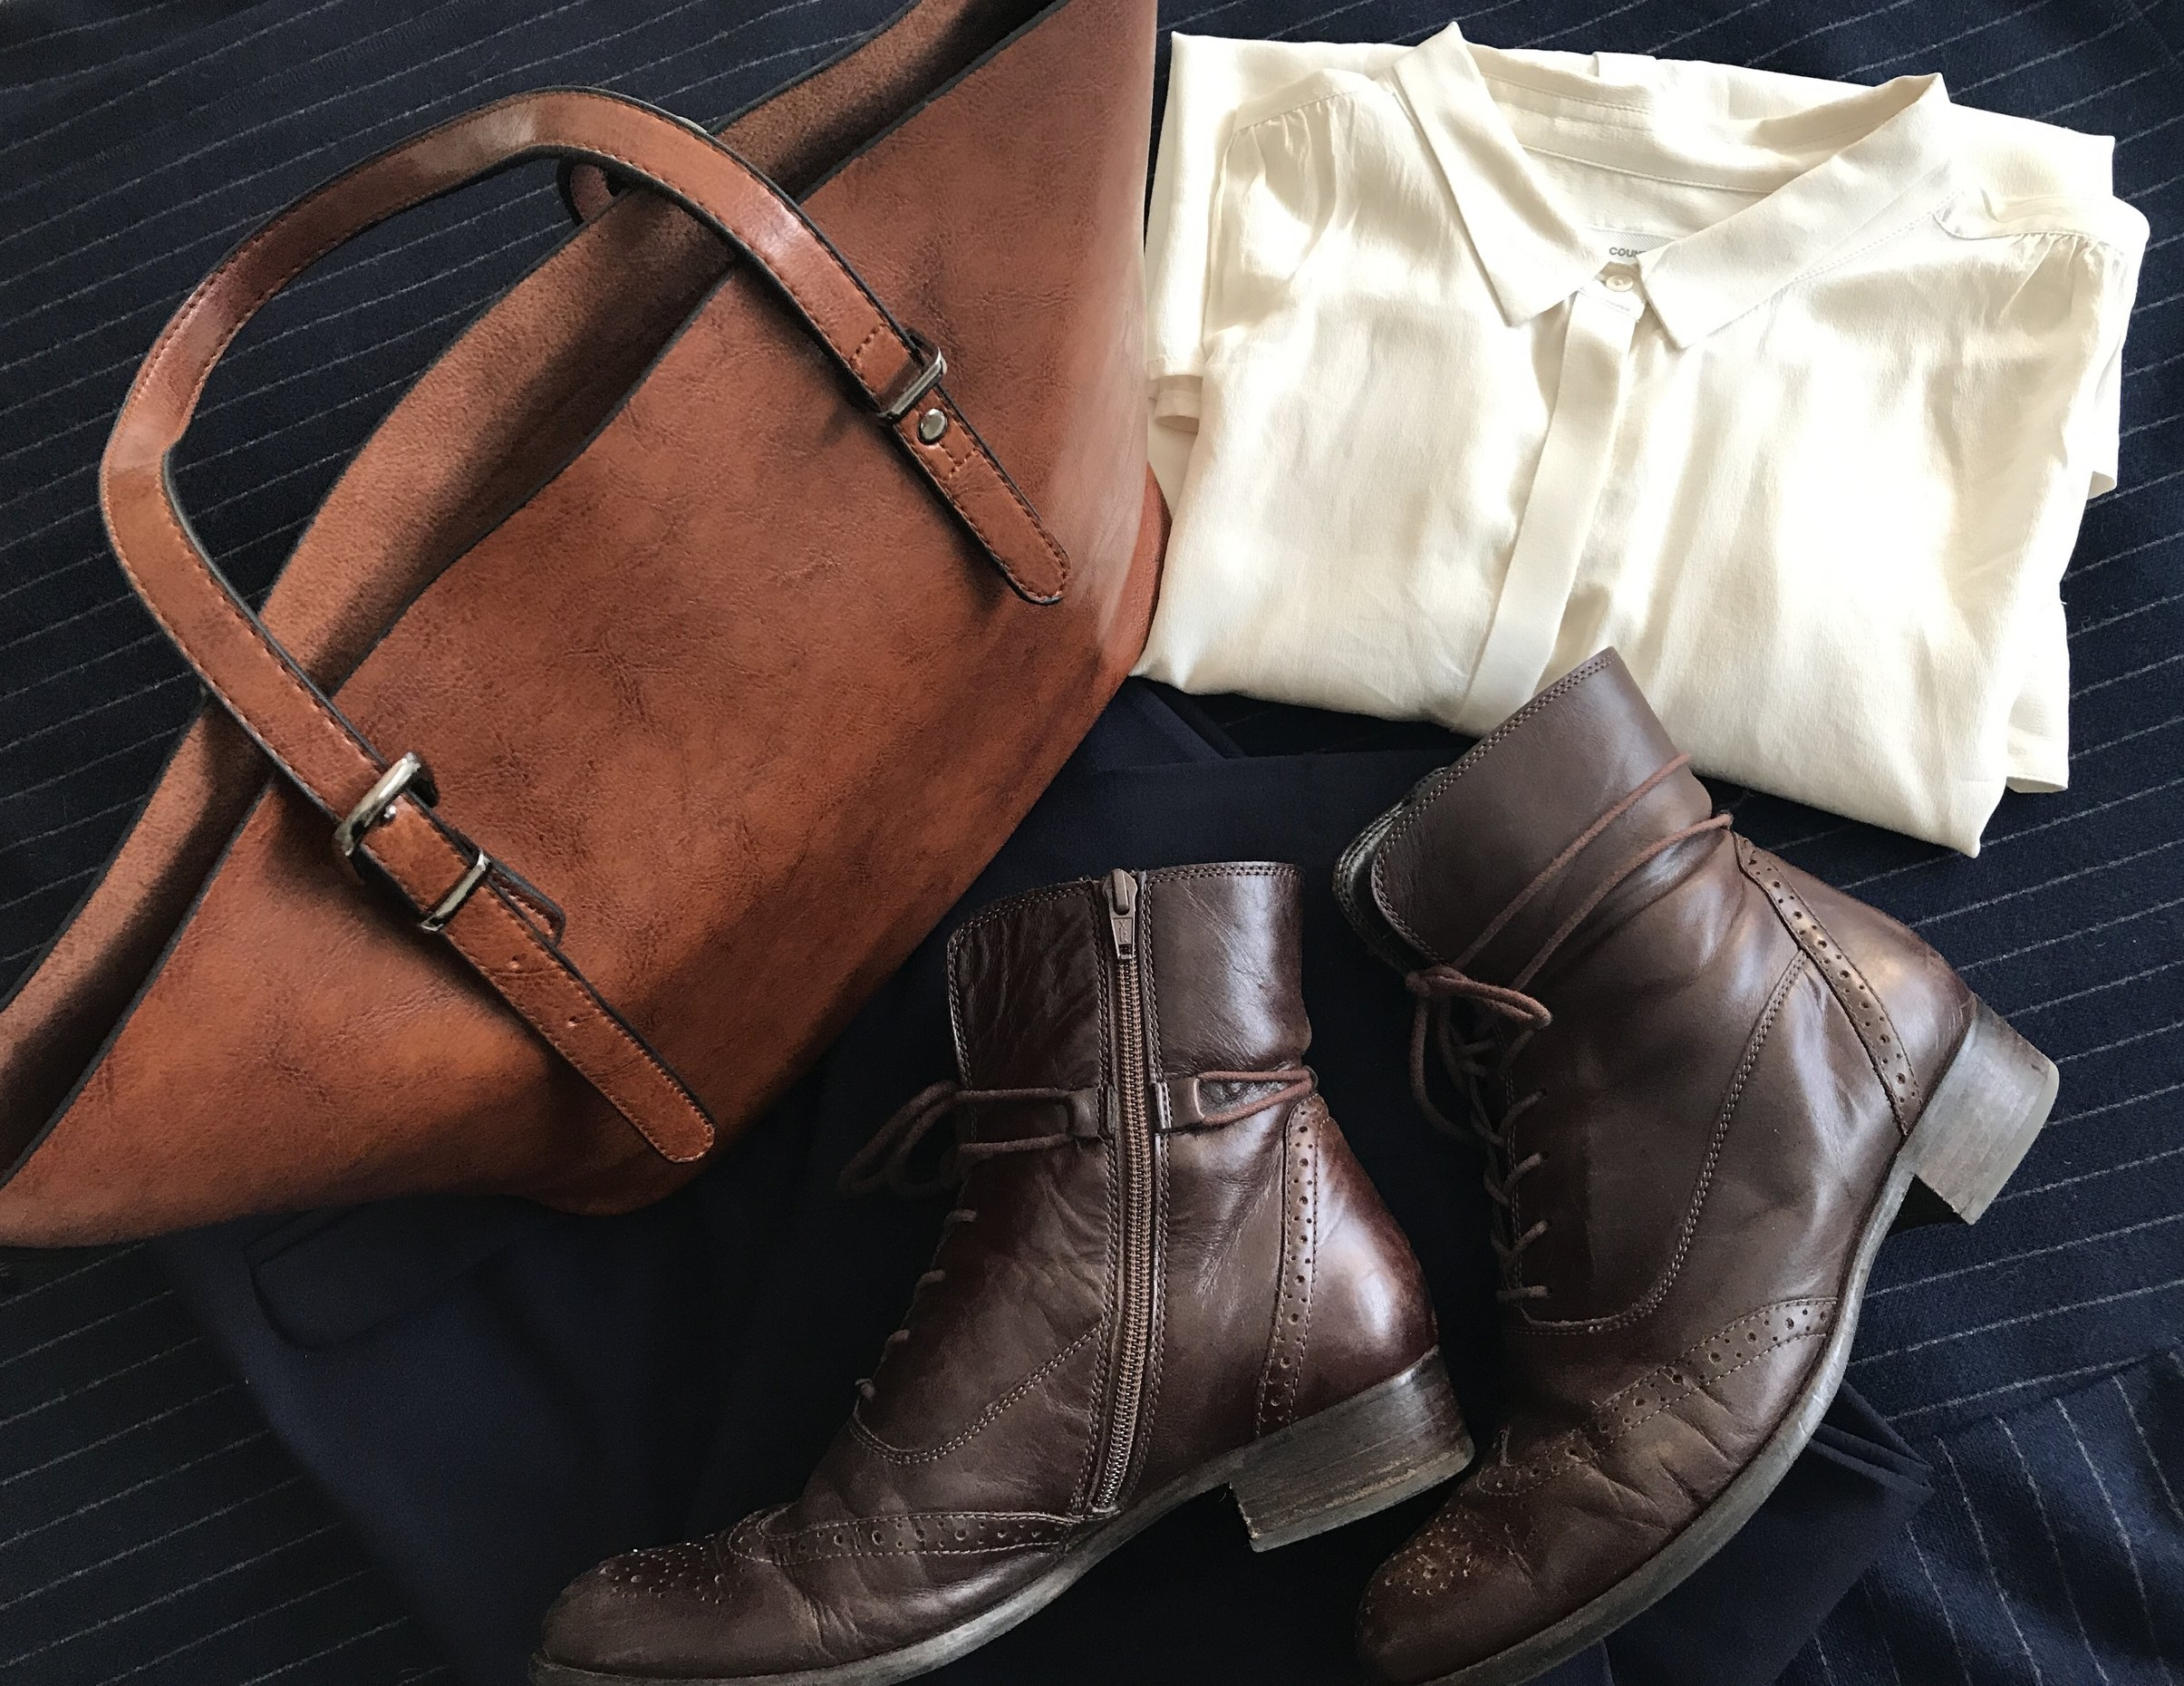 My boots, bag and blouse on top of my wool coat.